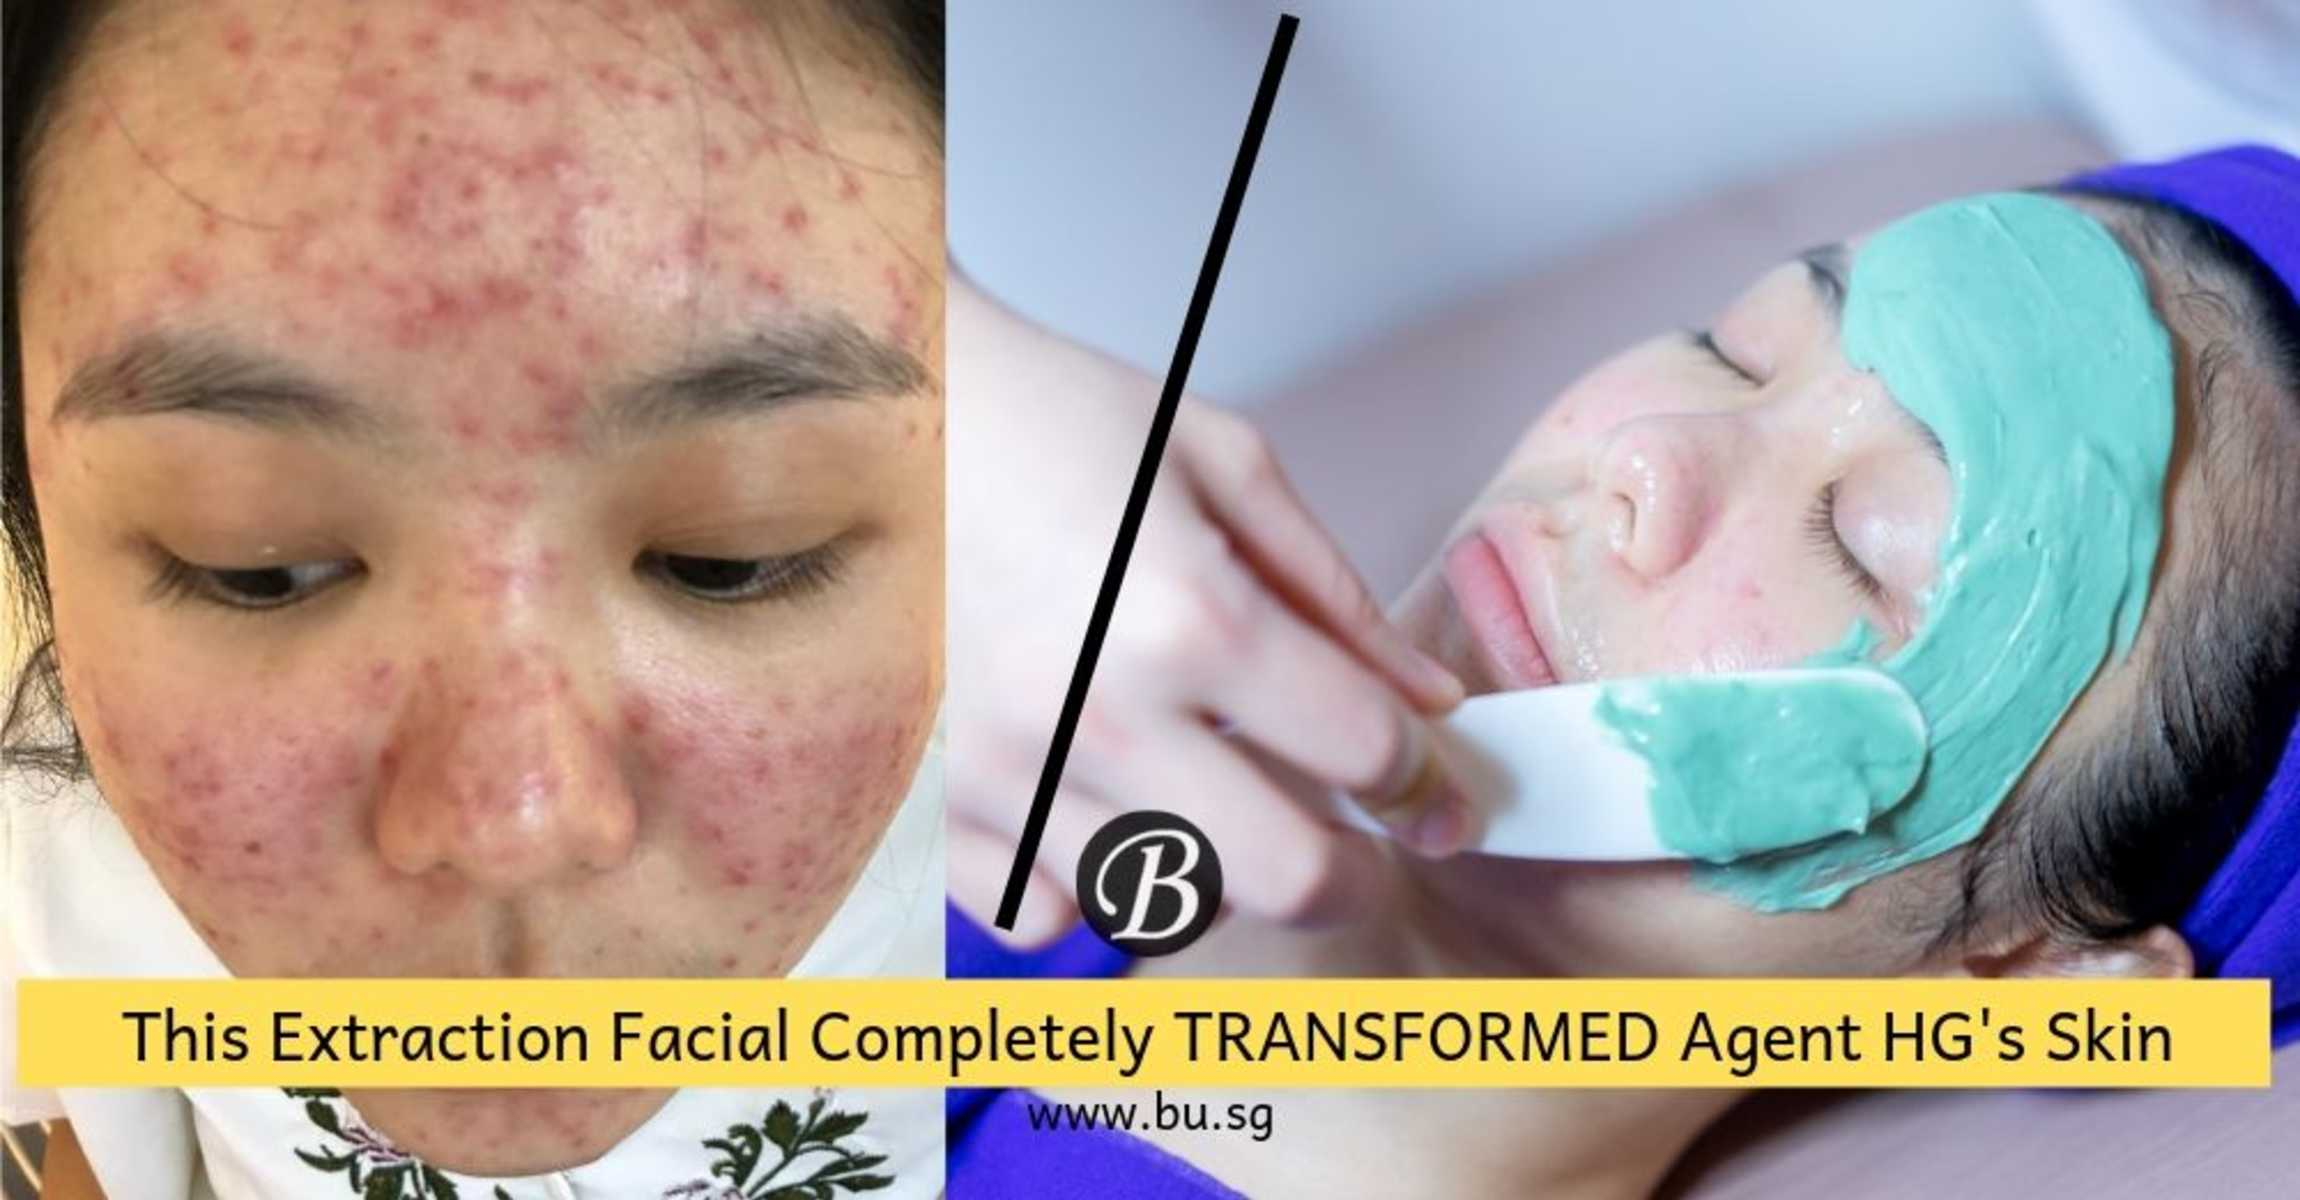 Yes, It's Possible to Recover from Severe Acne Outbreak! Agent HG Cleared Her Acne by Going to This Facial Salon